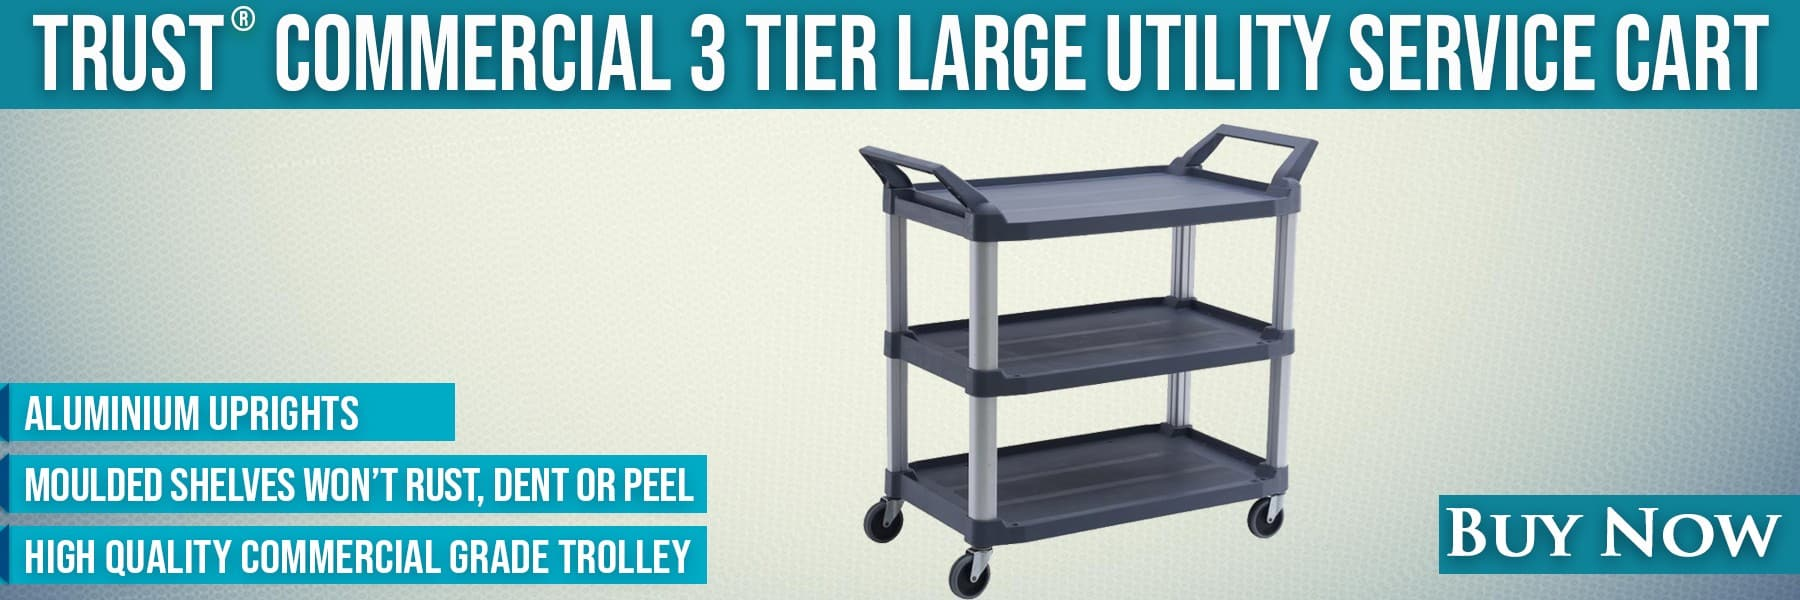 TRUST 3 Tier Utility Cart Large